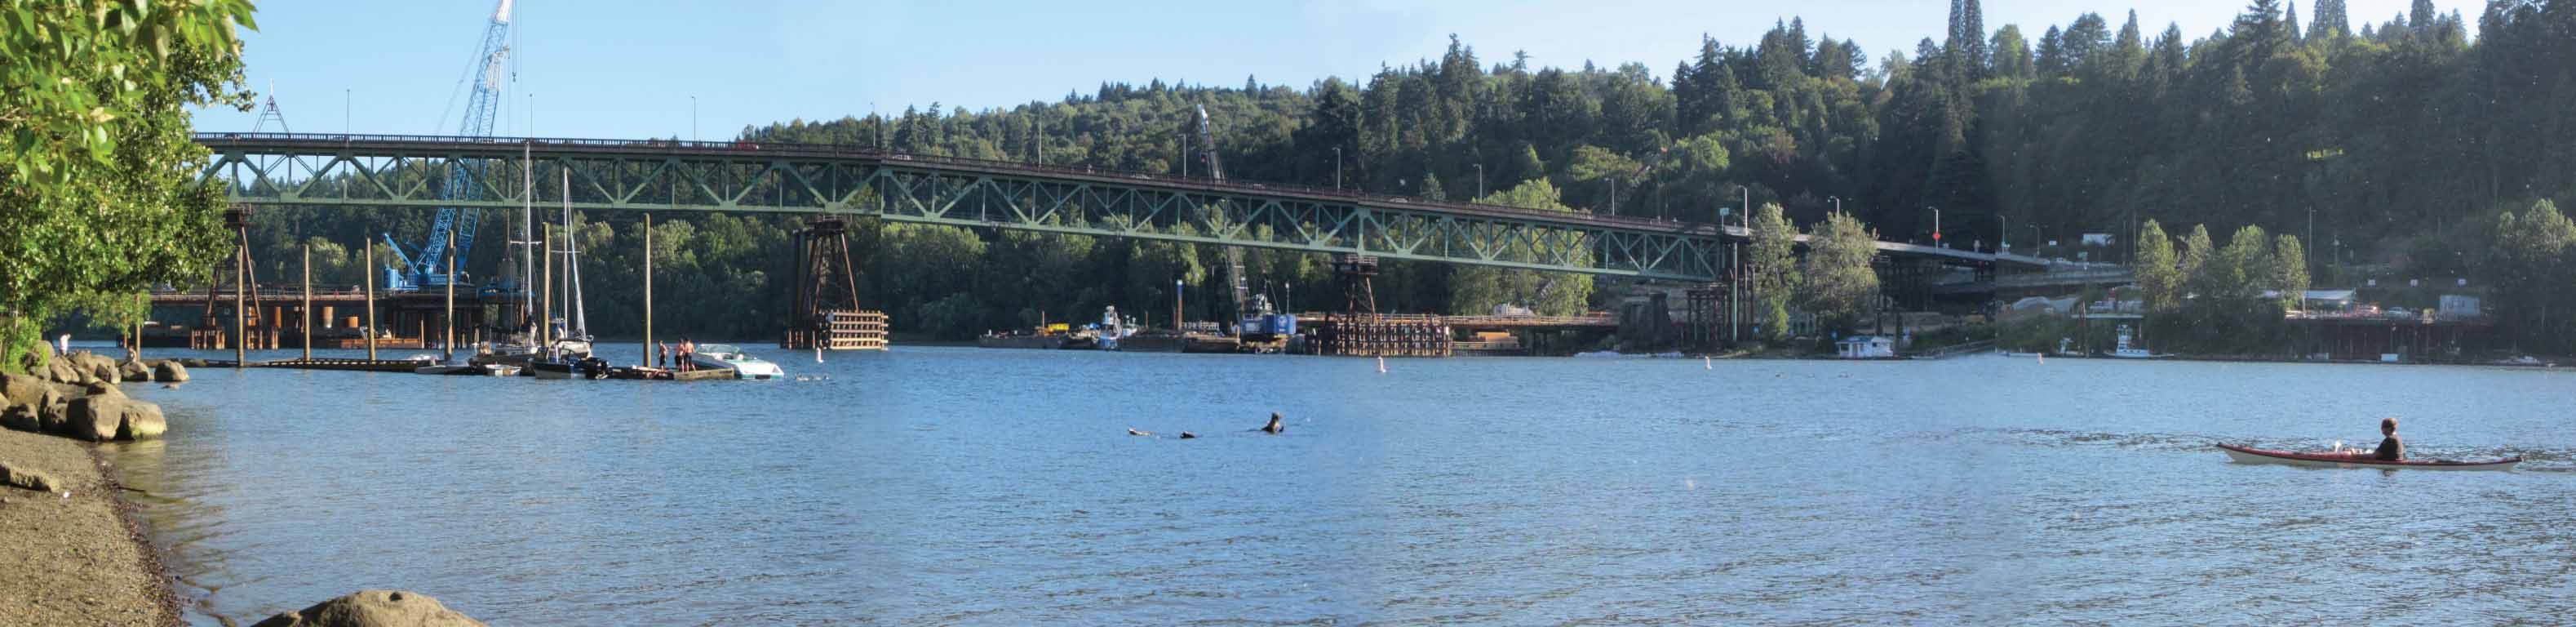 Panorama of Sellwood Bridge under construction, taken from Sellwood Riverfront Park, 7/8/2013. (Click for larger image)